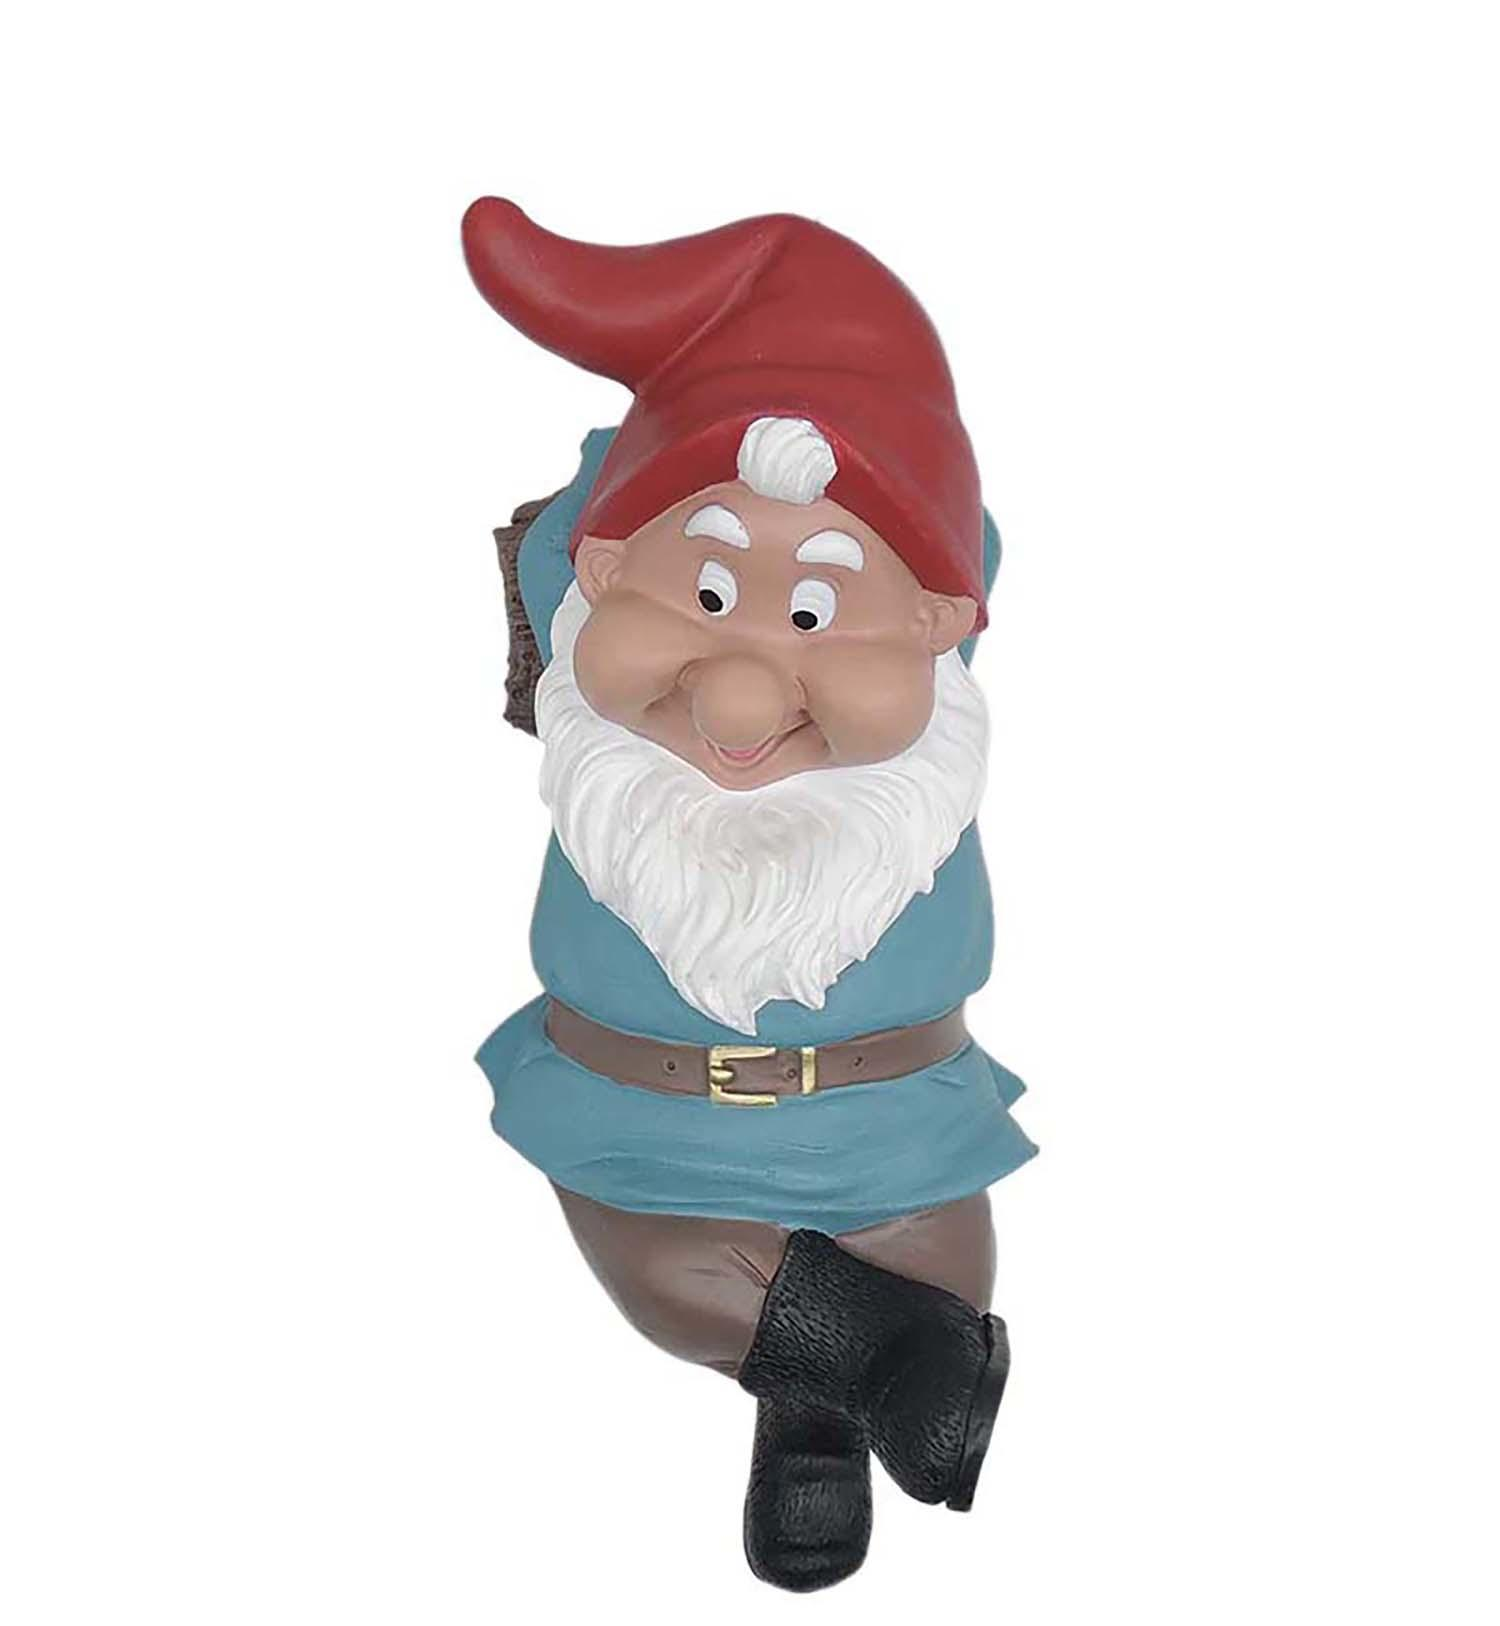 Garden Gnome Statue Resin Unique Handmade Arts and Crafts for Garden Decoration PH15812